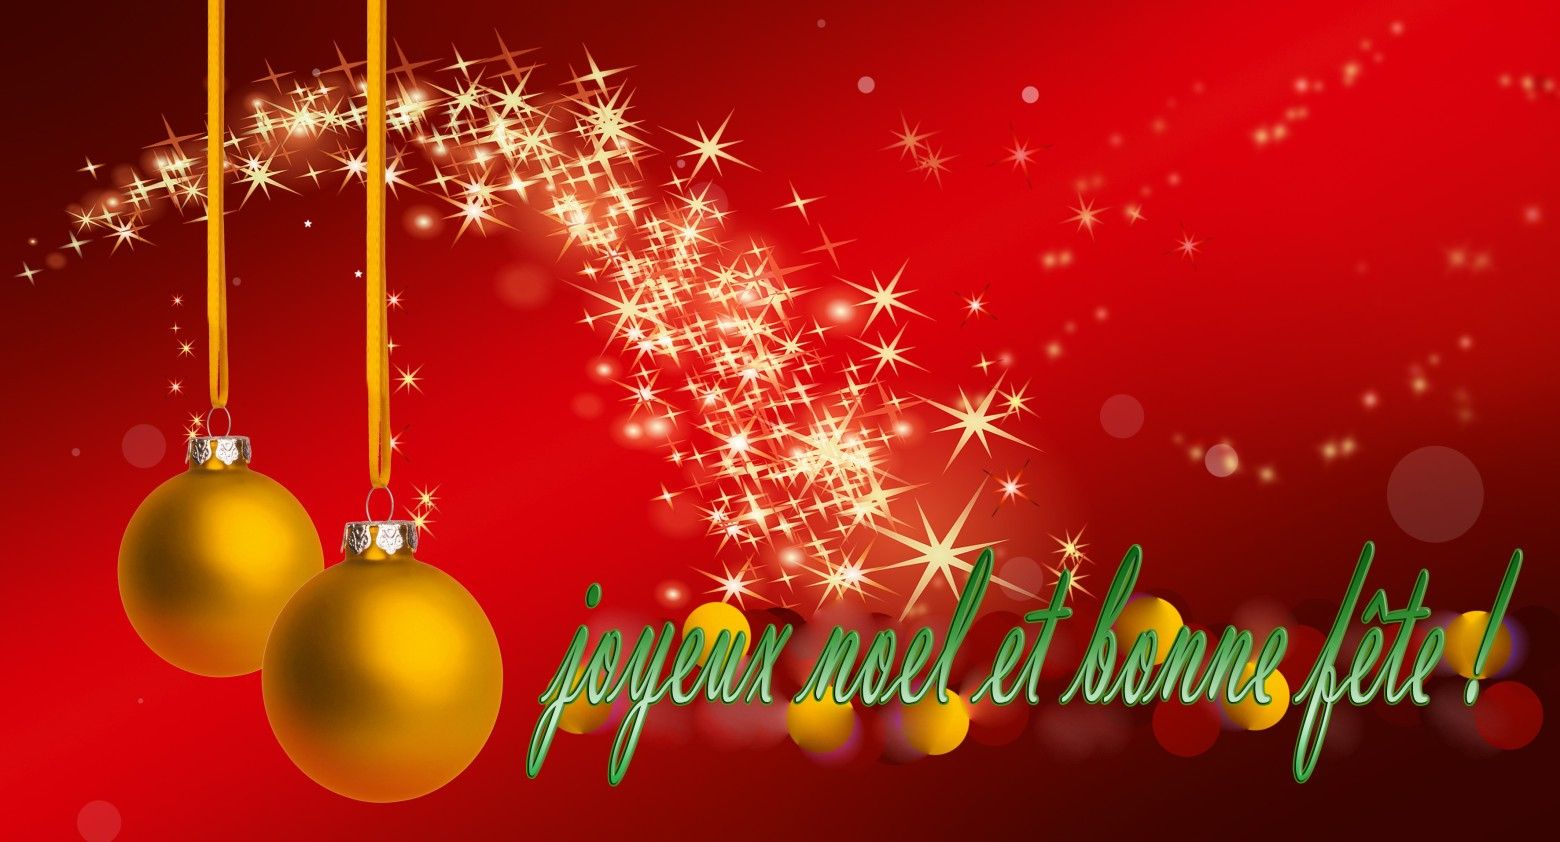 Carte Noel A Telecharger Gratuitement | Lighteam serapportantà